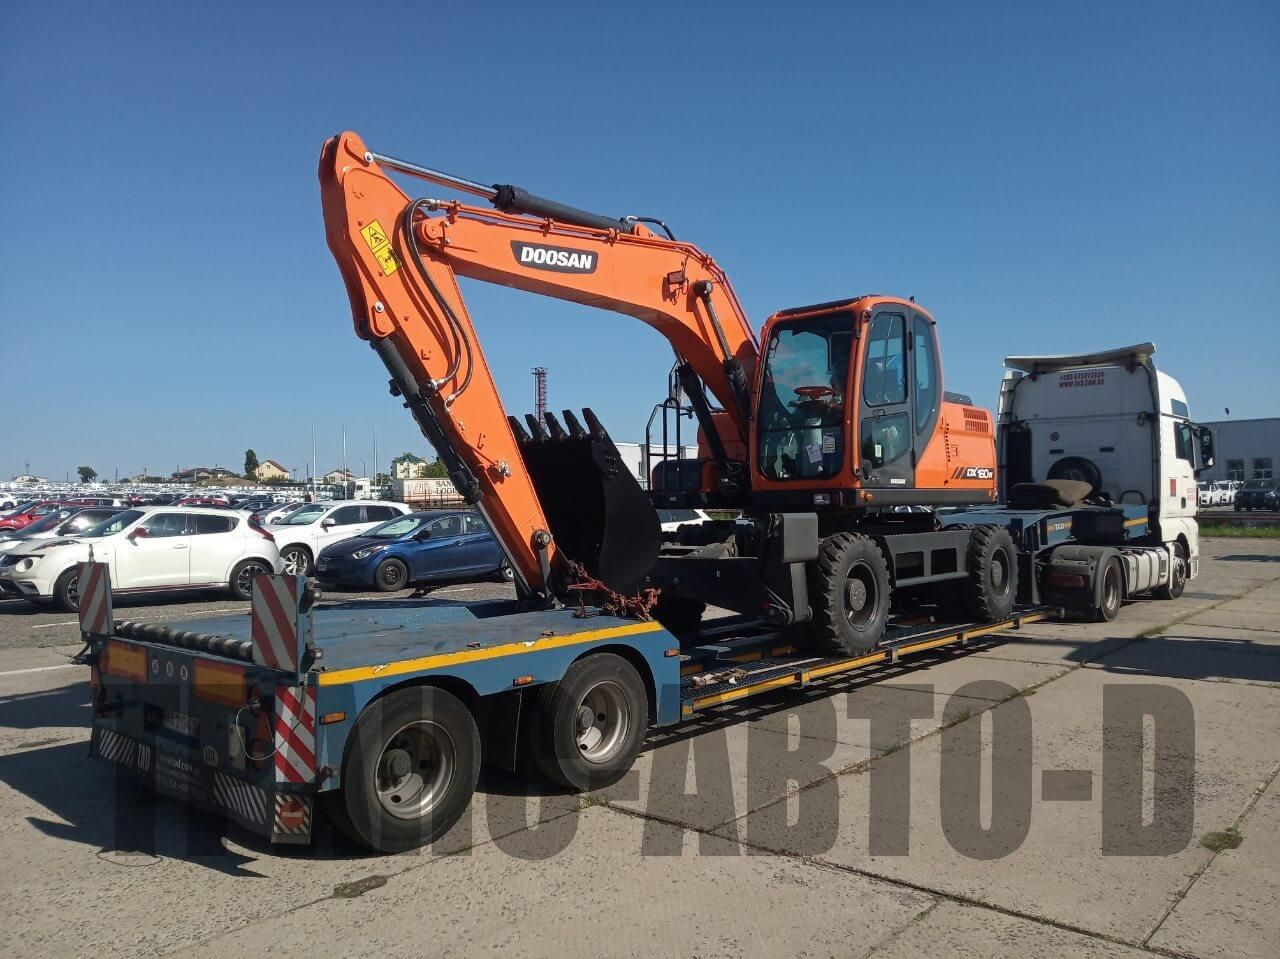 Transportation of the Doosan excavator from Europe to Ukraine - 3